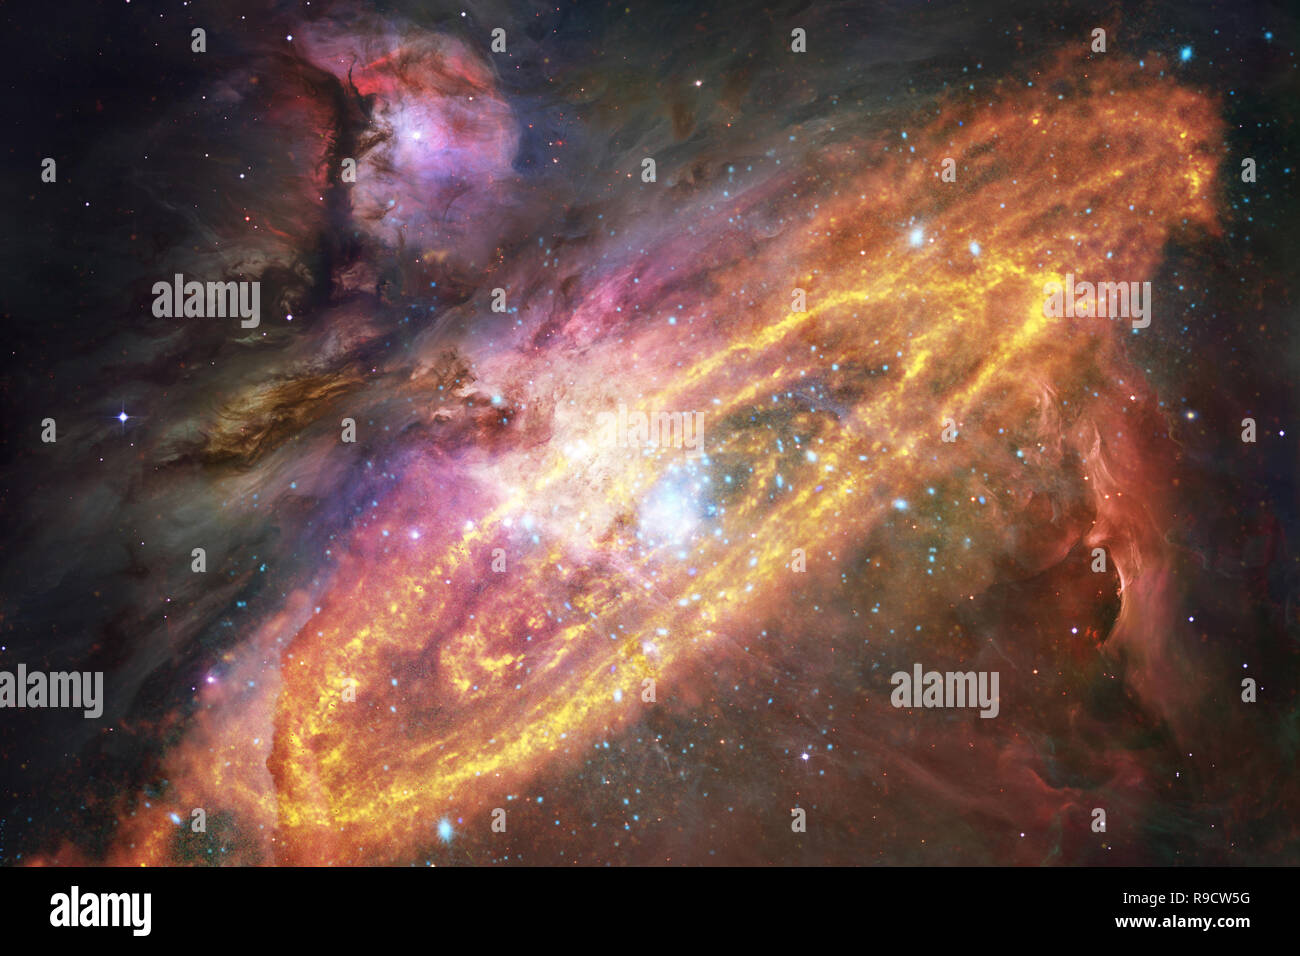 galaxies stars and nebulas in awesome space image colorful science fiction wallpaper elements of this image furnished by nasa R9CW5G